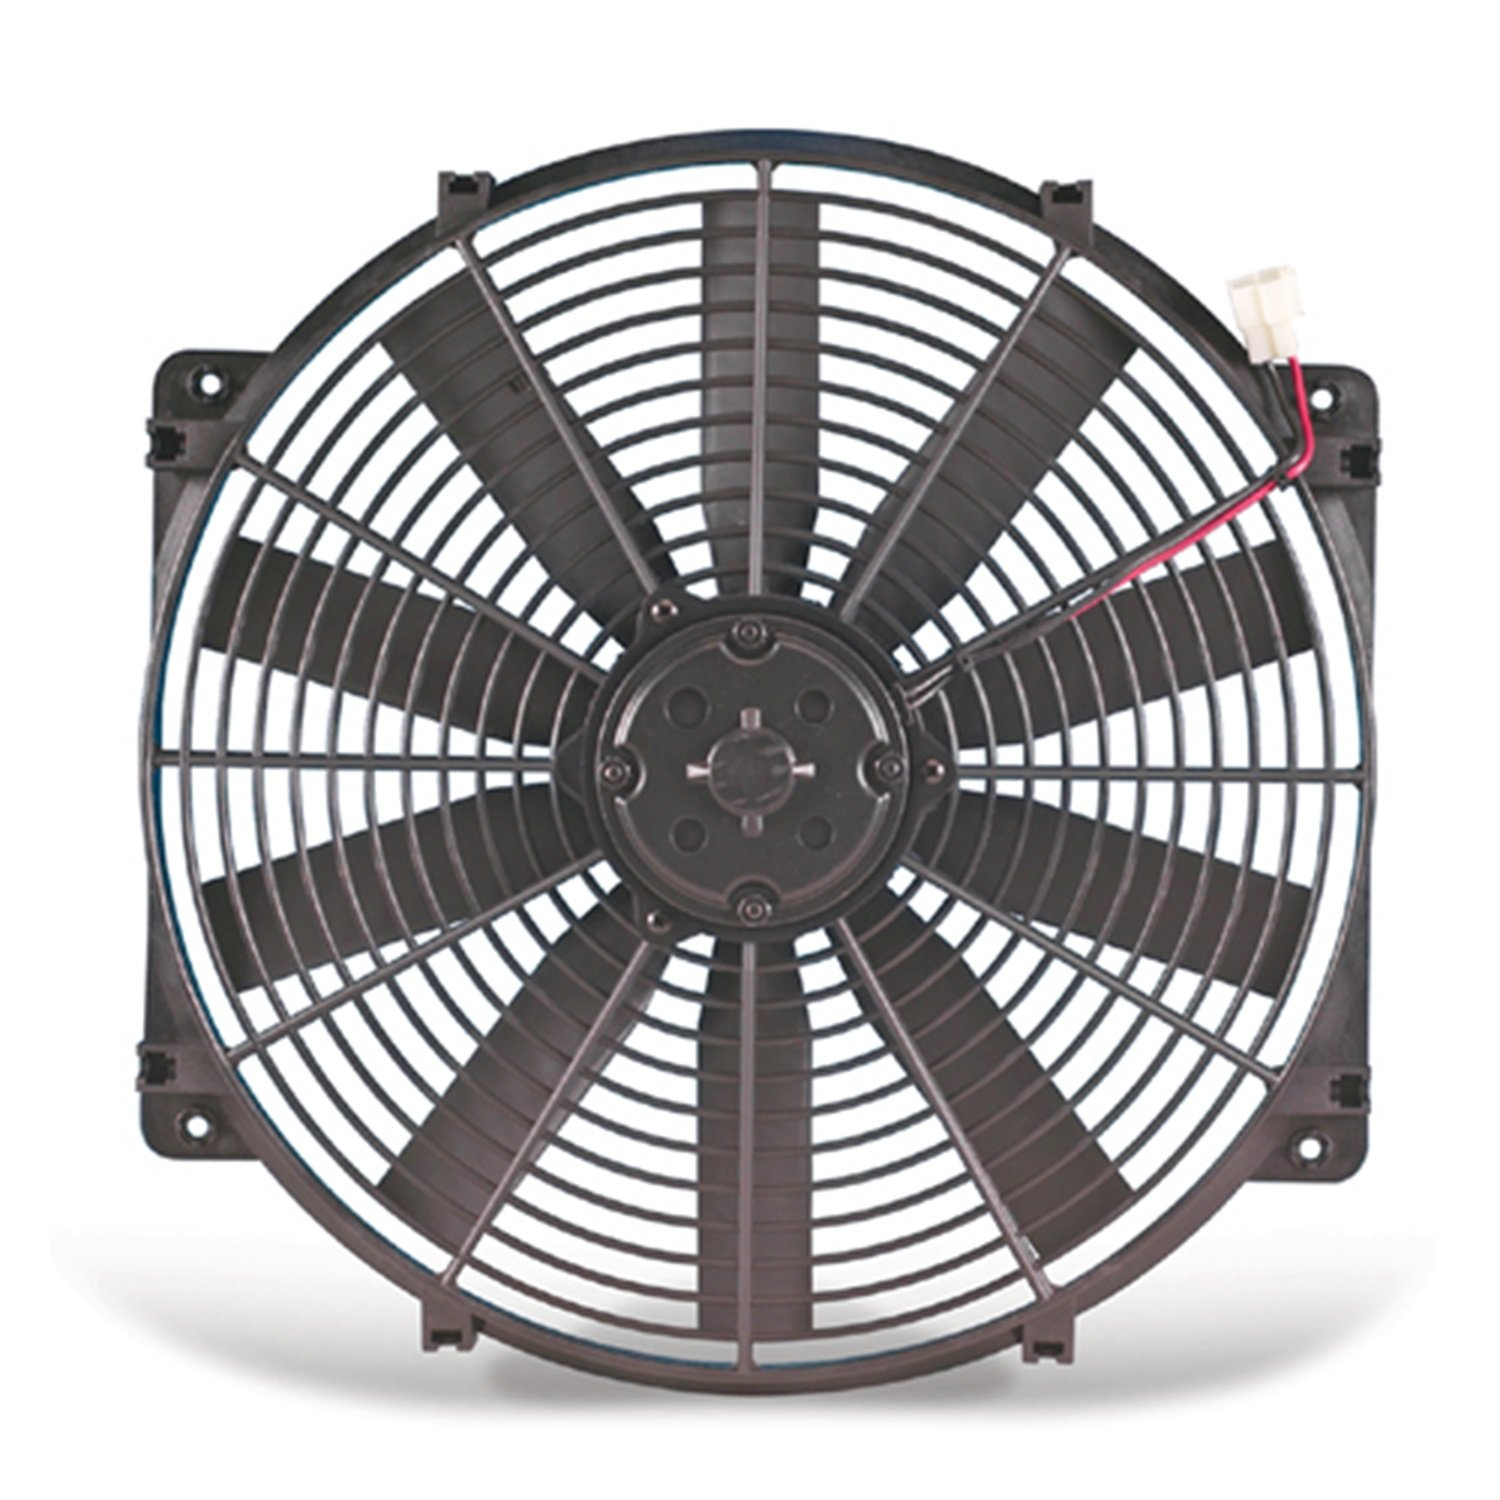 Flex-a-lite 11224 Black 12' 24V Reversible Electric Fan